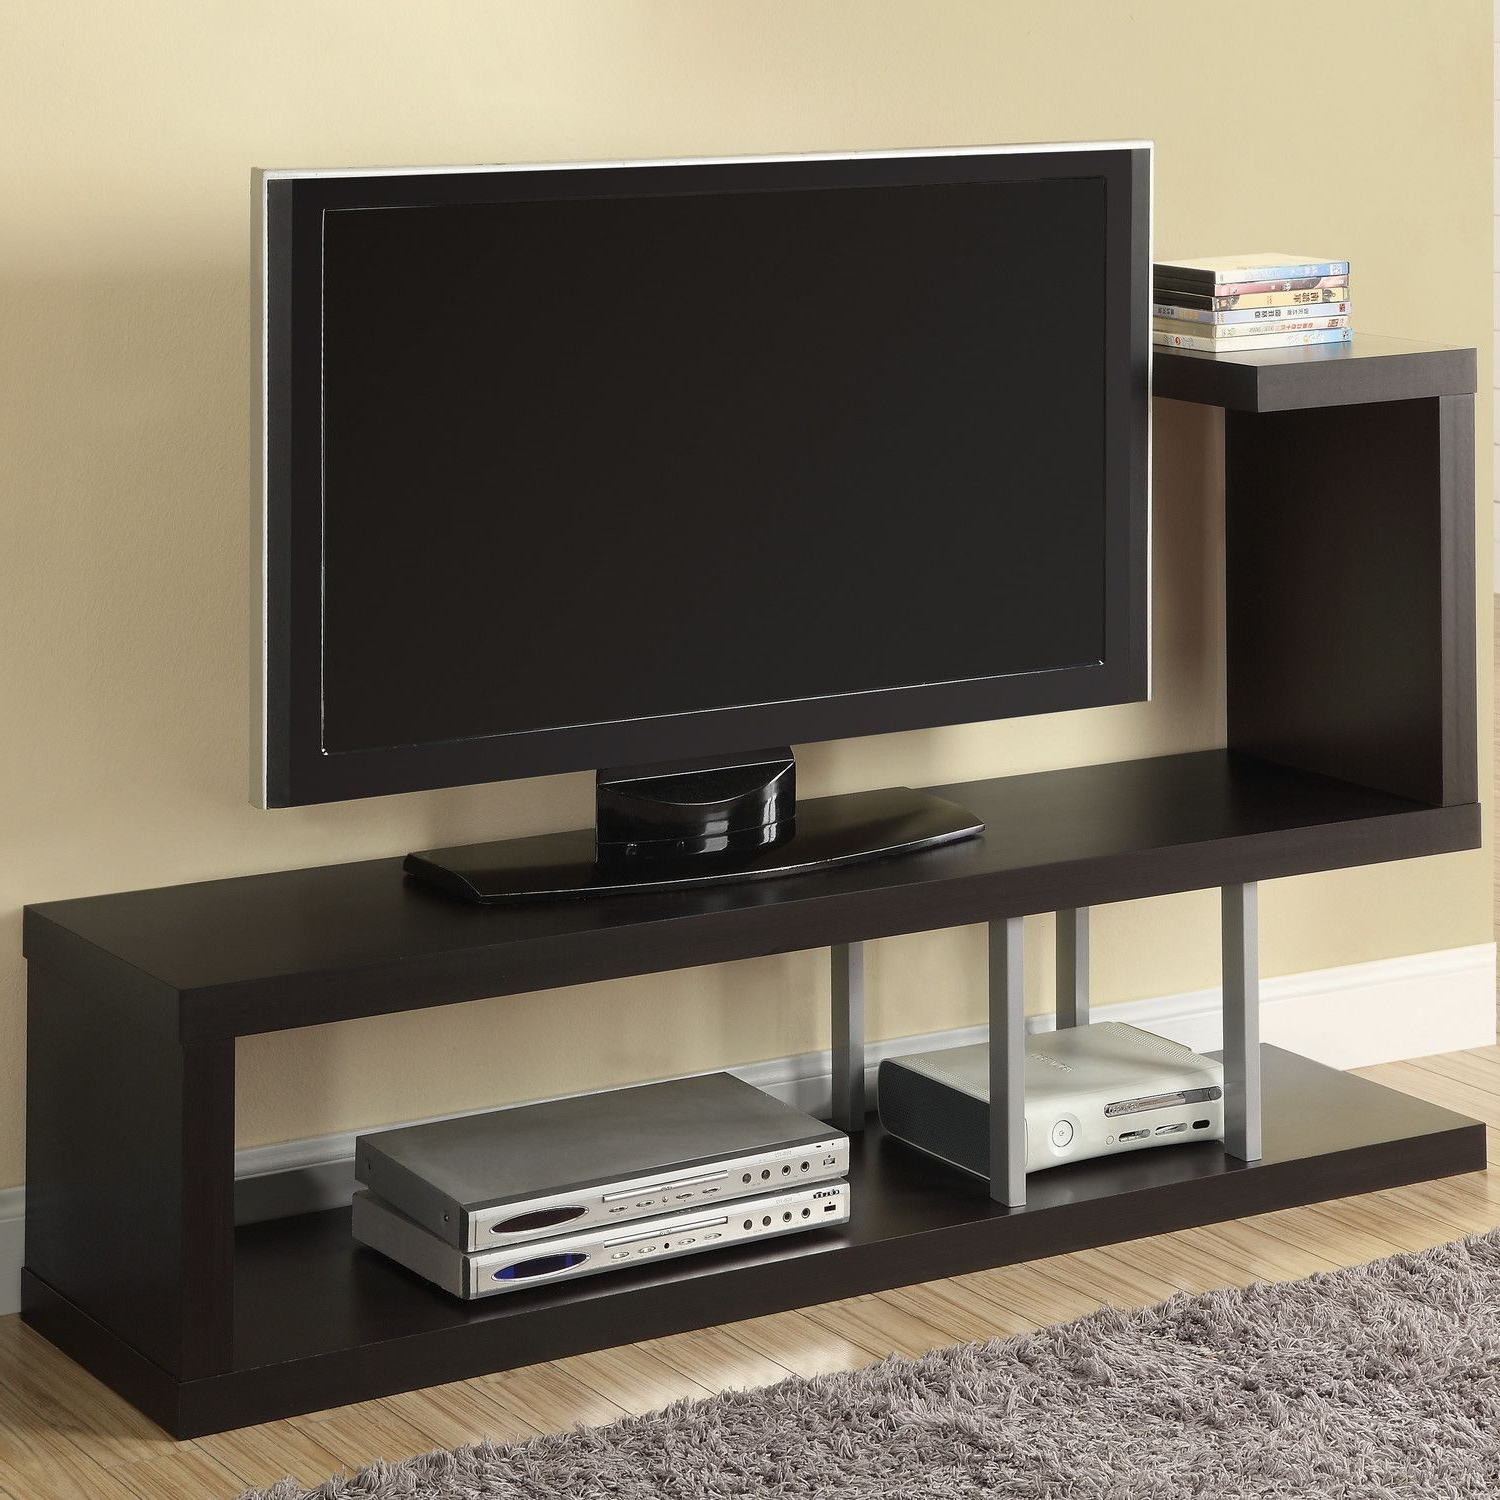 Tv Stand For Small Bedroom (View 11 of 20)